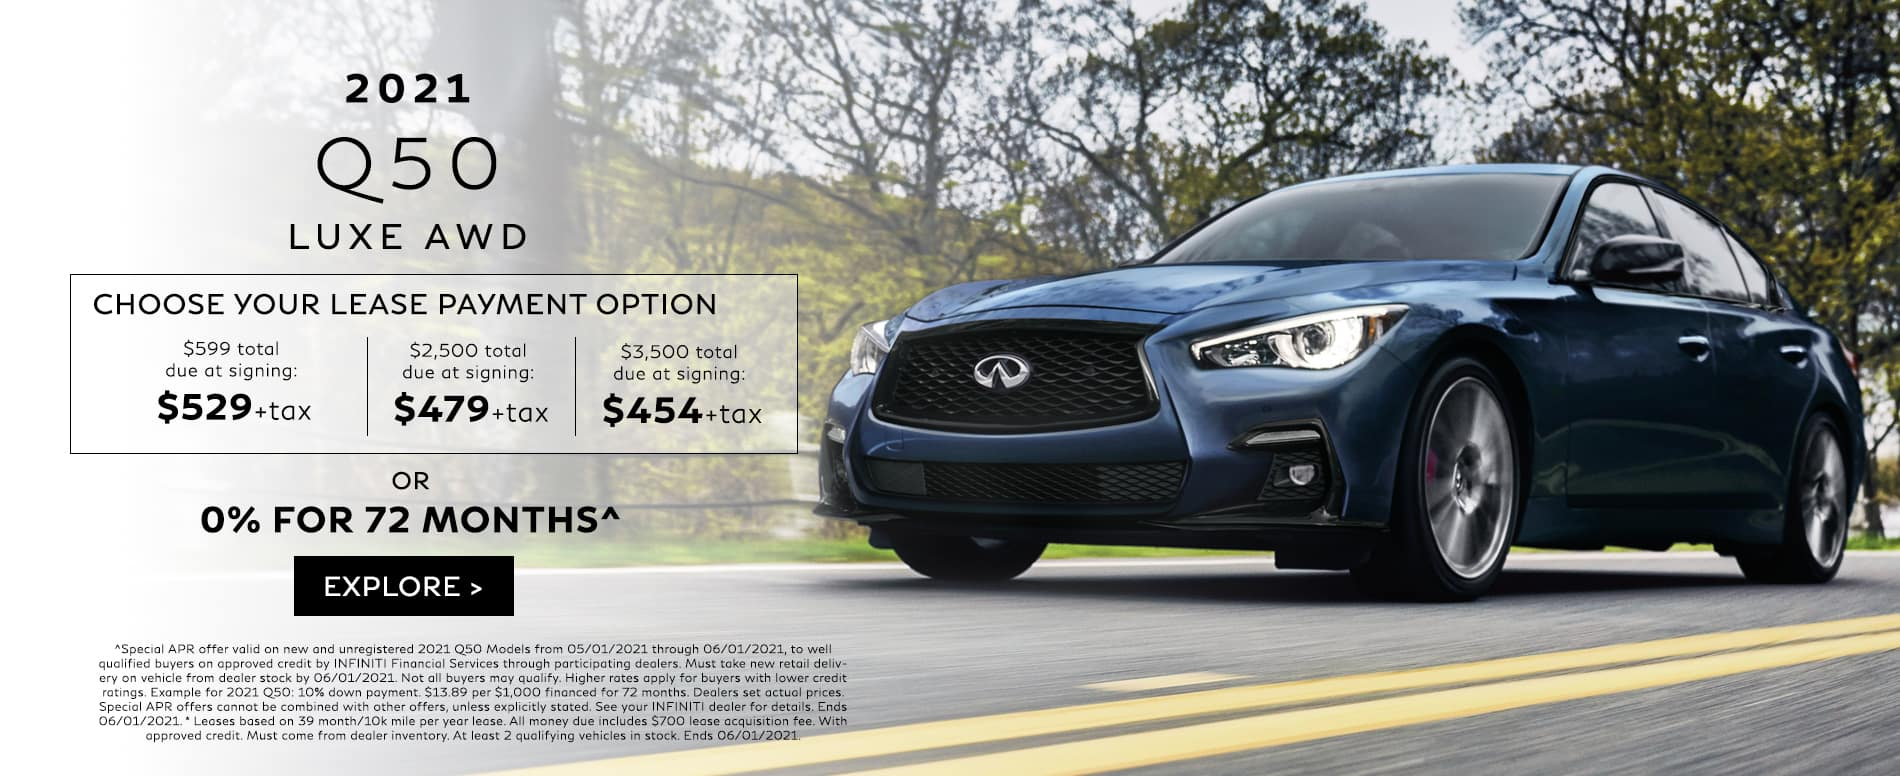 Q50 Lease Payment Options